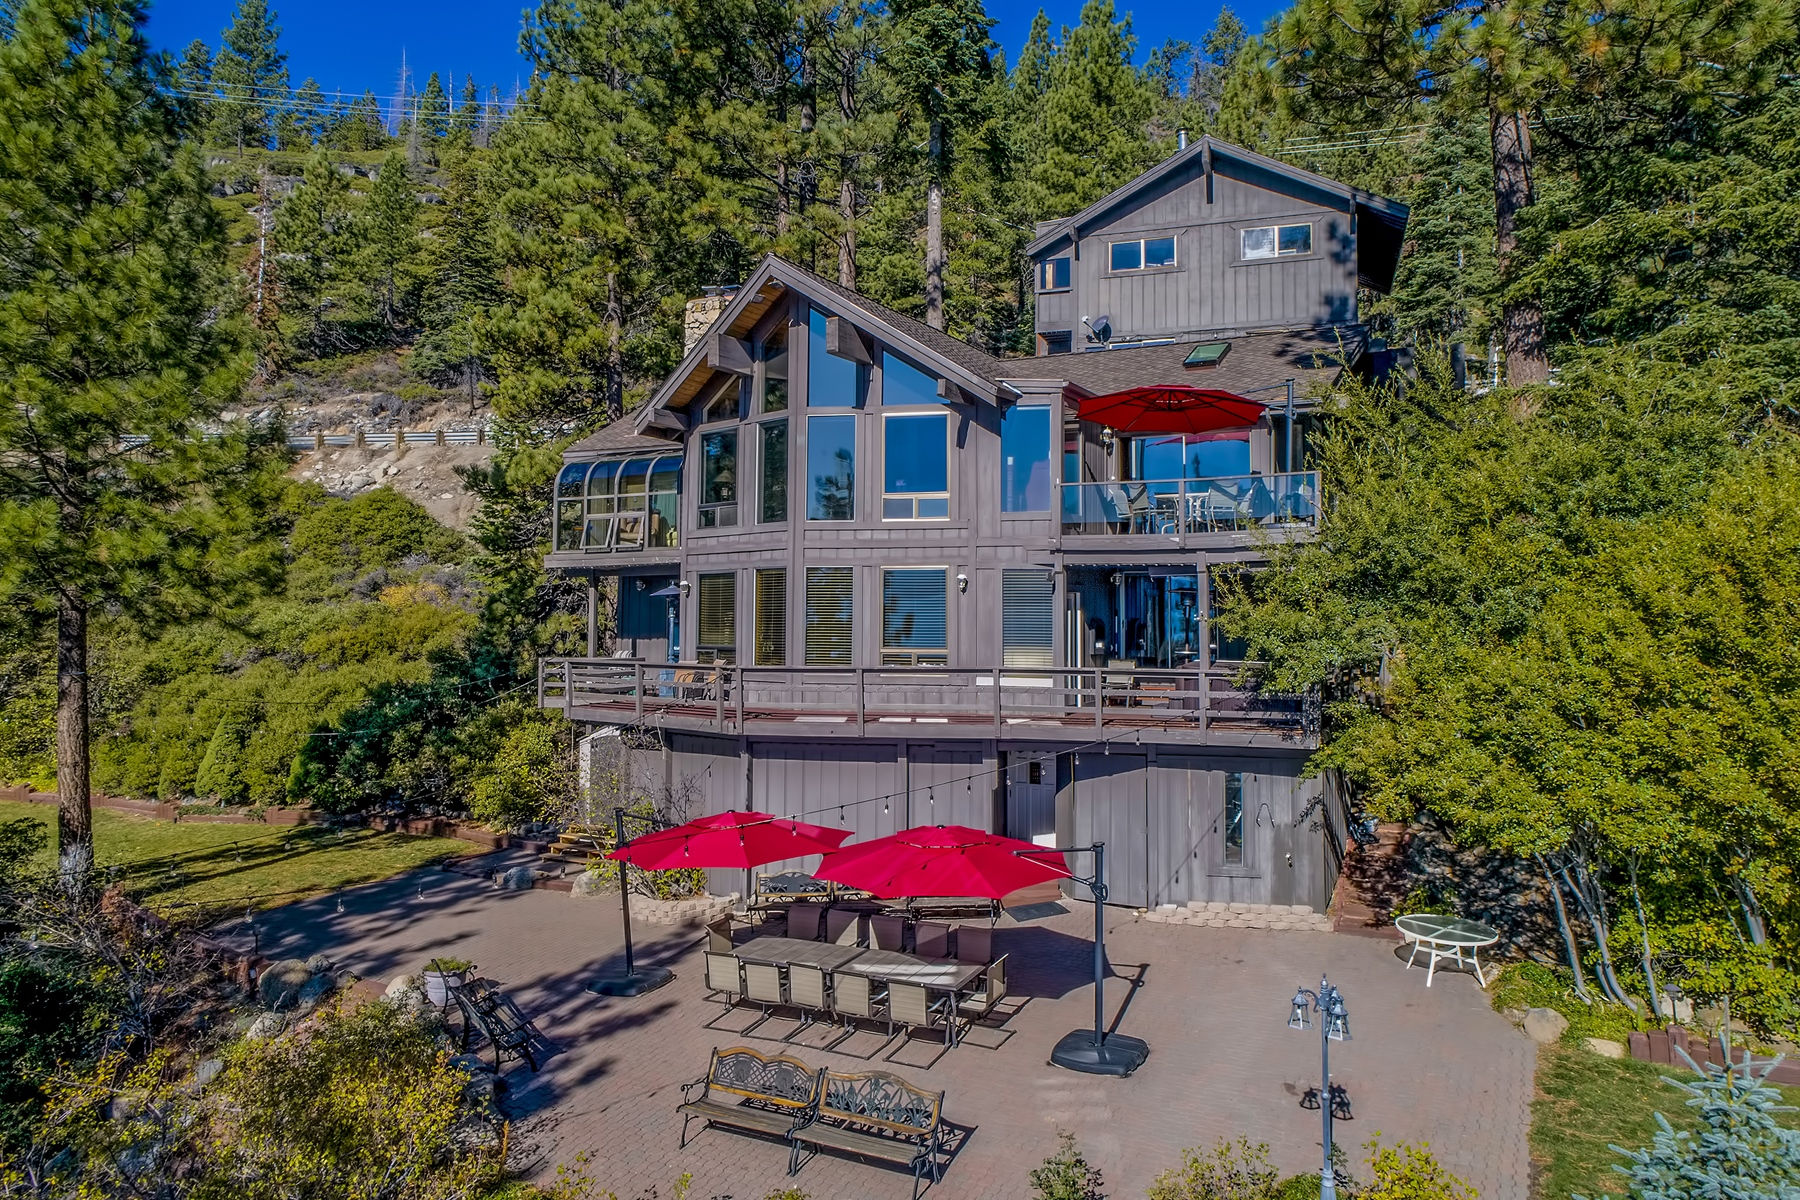 Property for Active at 453 Lakeshore Blvd., Incline Village, Nevada 453 Lakeshore Boulevard Incline Village, Nevada 89451 United States